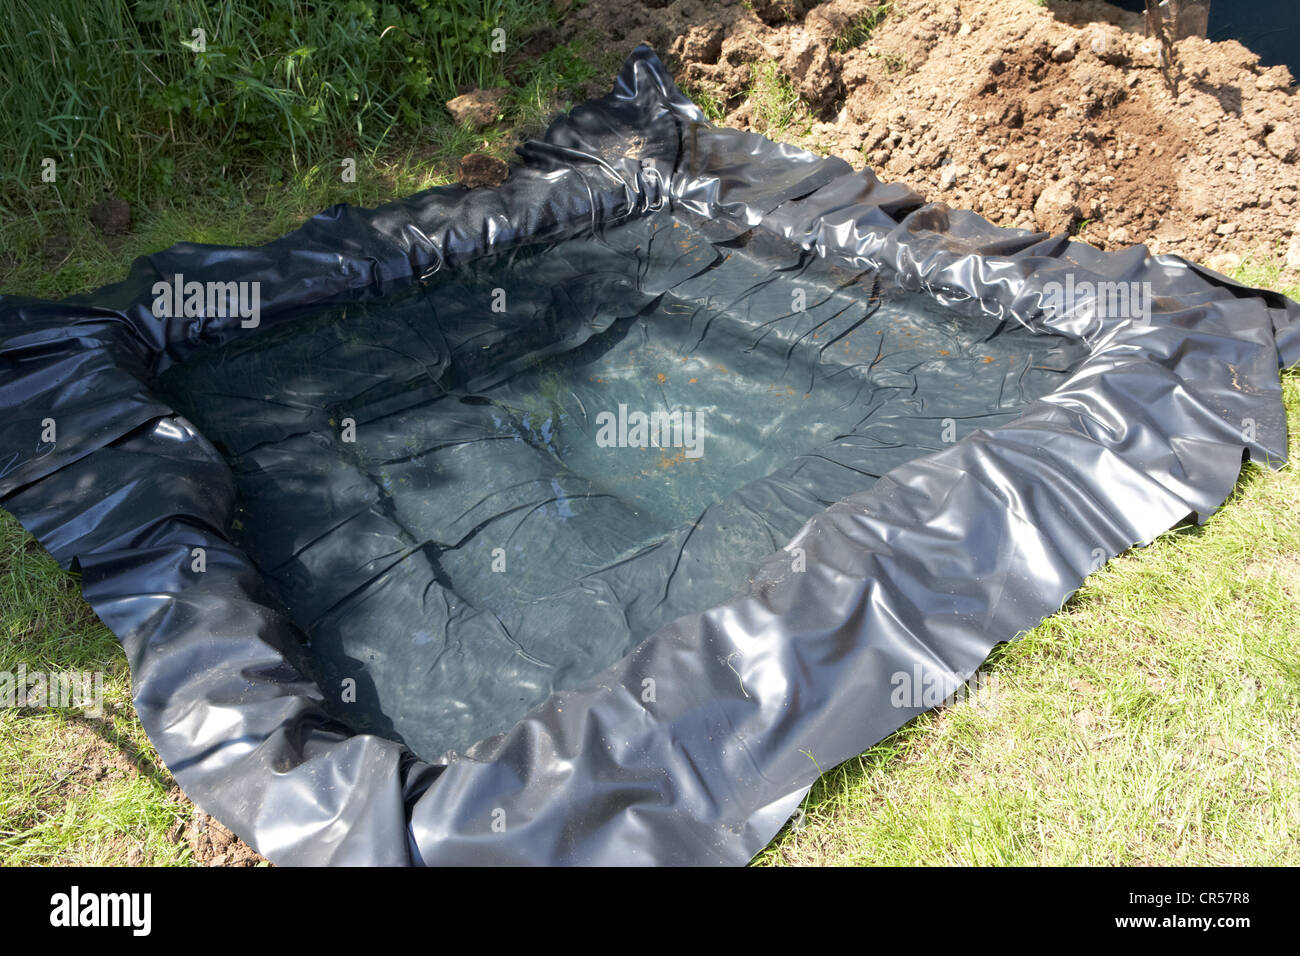 pond liner filled with water to create a pond in a garden in the uk - Stock Image